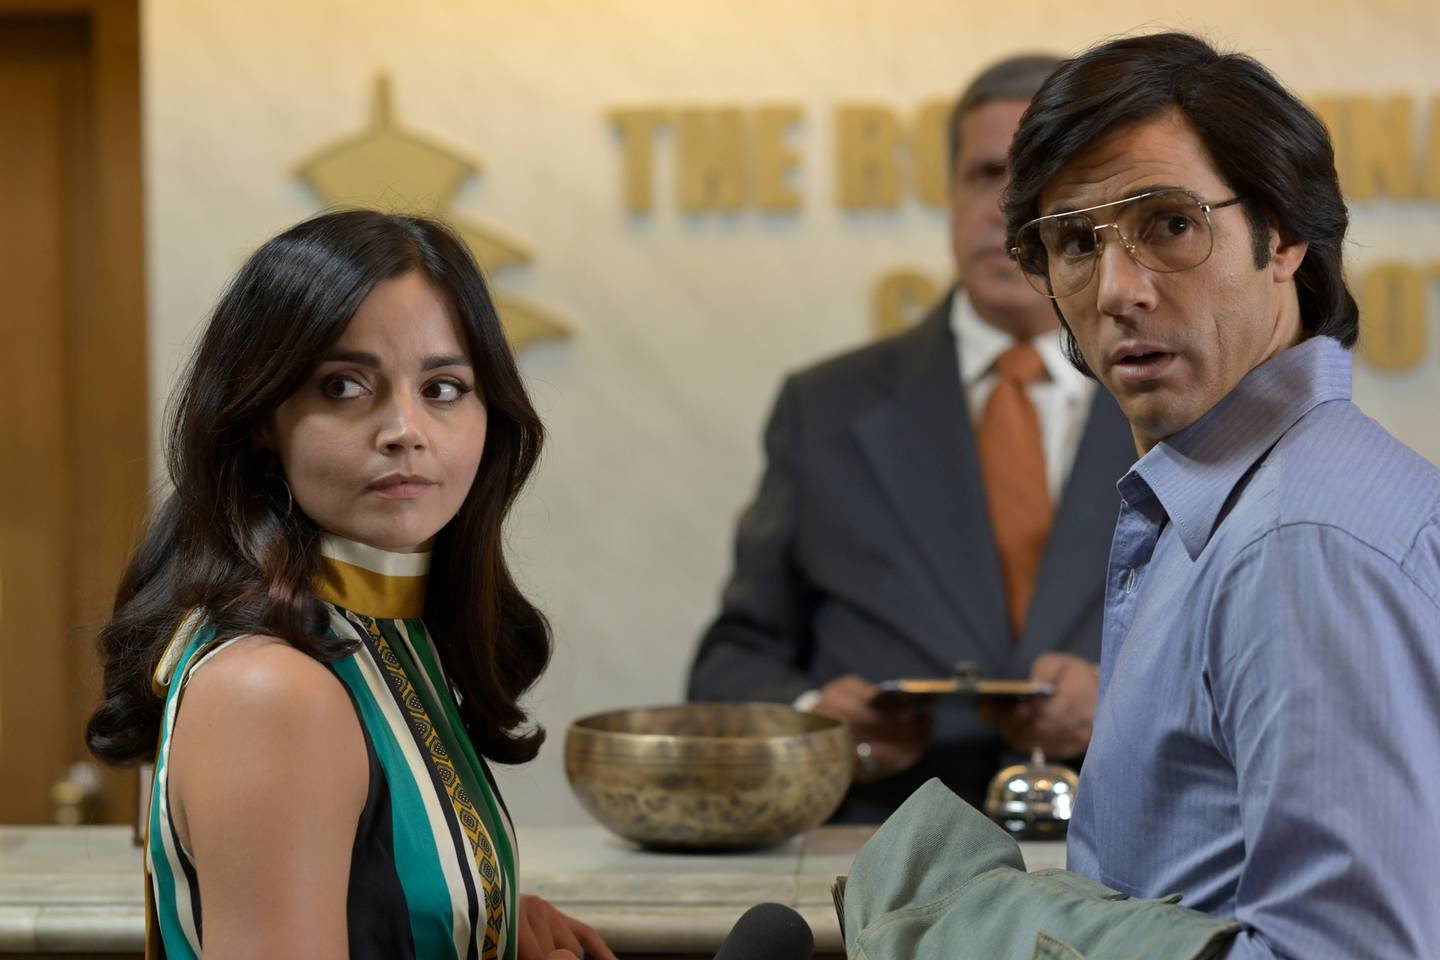 Jenna Coleman and Tahar Rahim playi Marie-Andrée Leclerc and Charles Sobhraj in the Netflix drama...